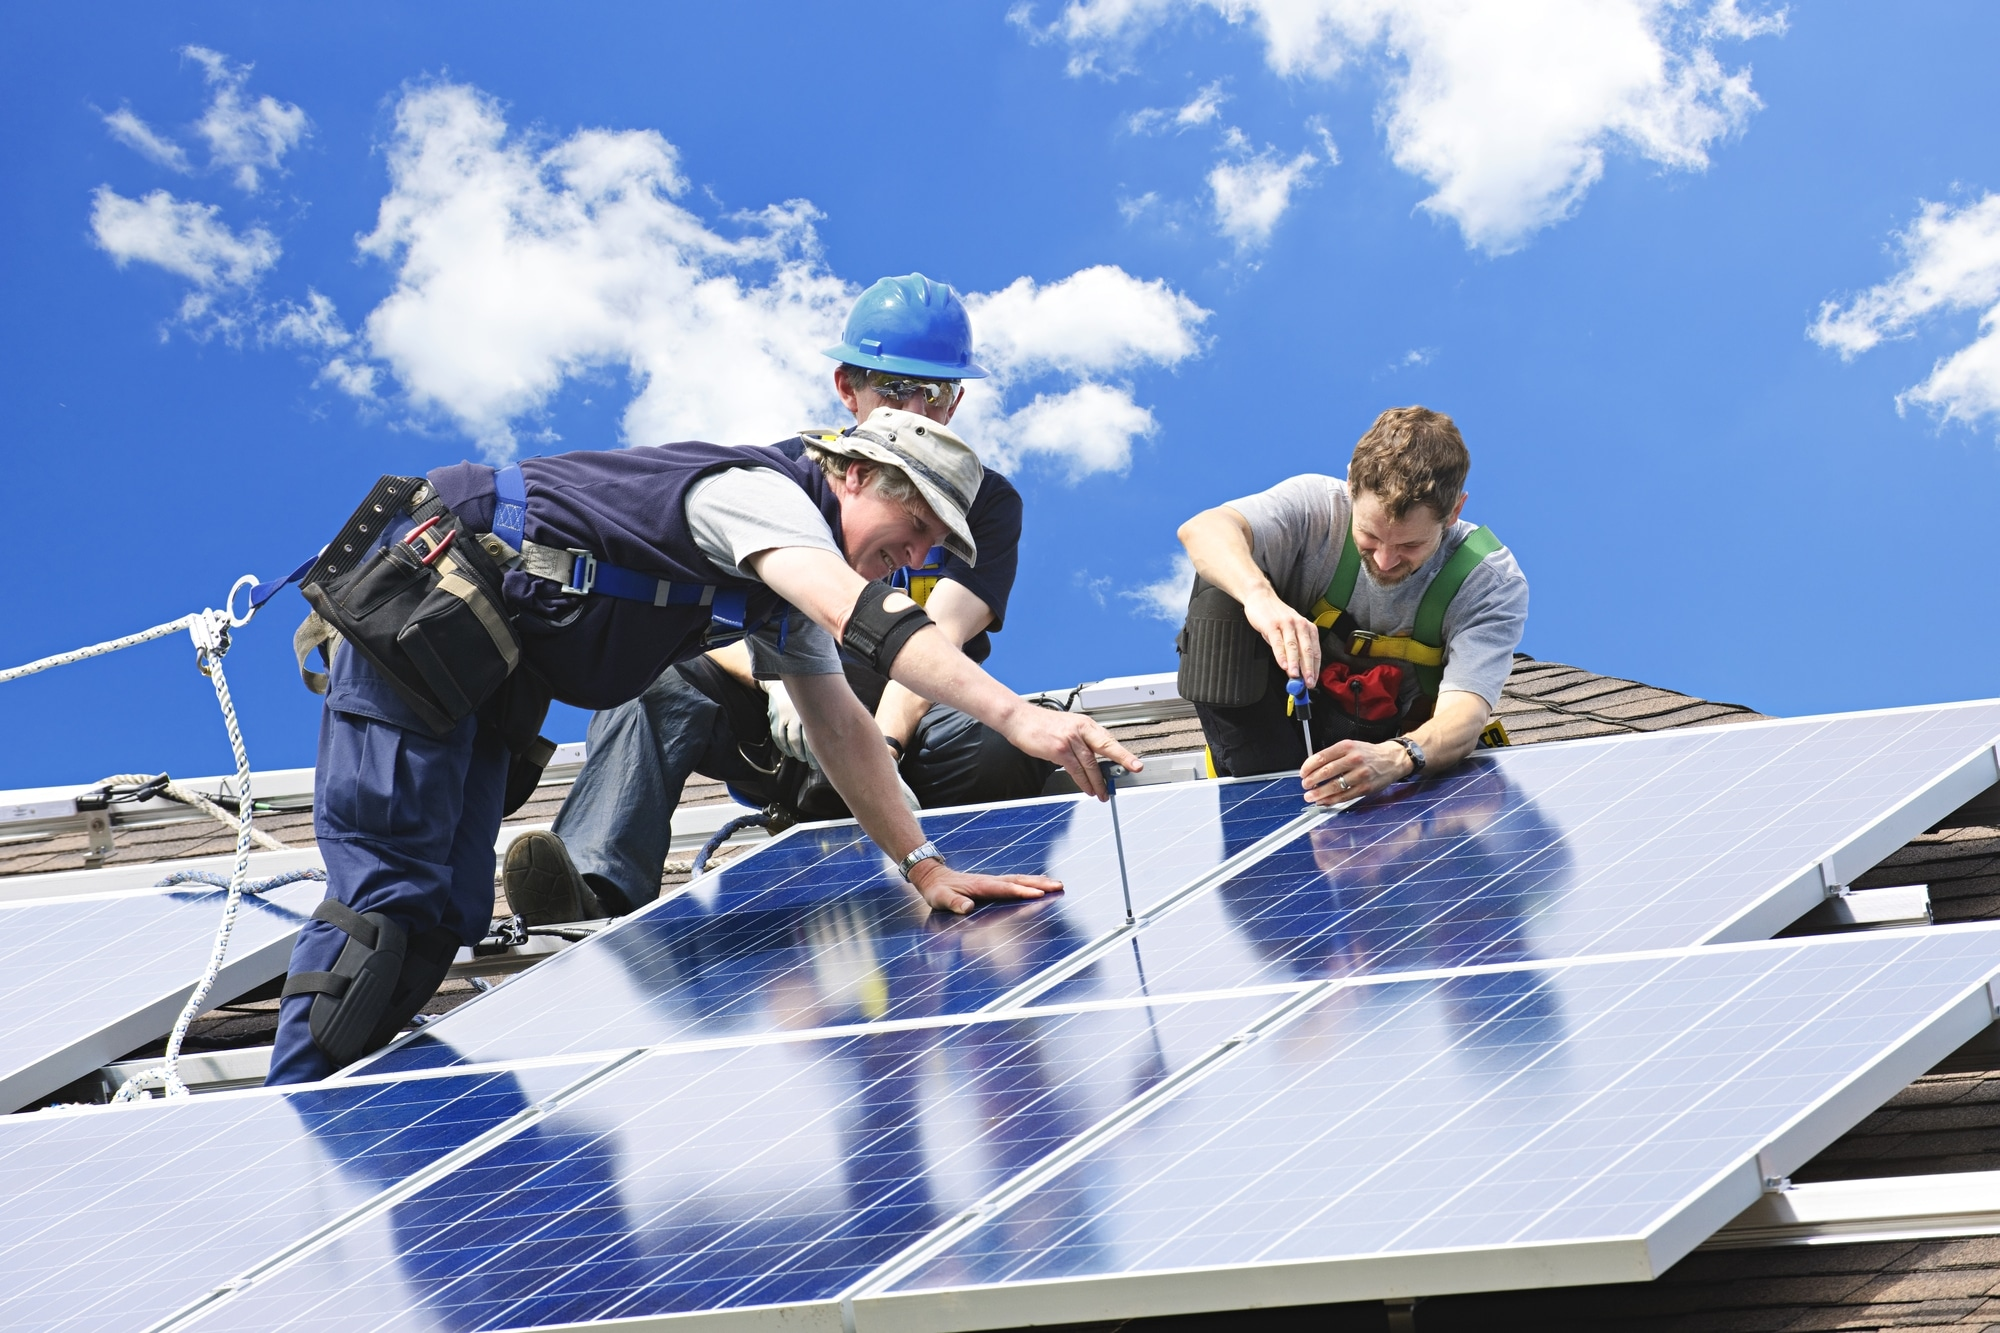 Workers installing alternative energy photovoltaic solar panels on roof